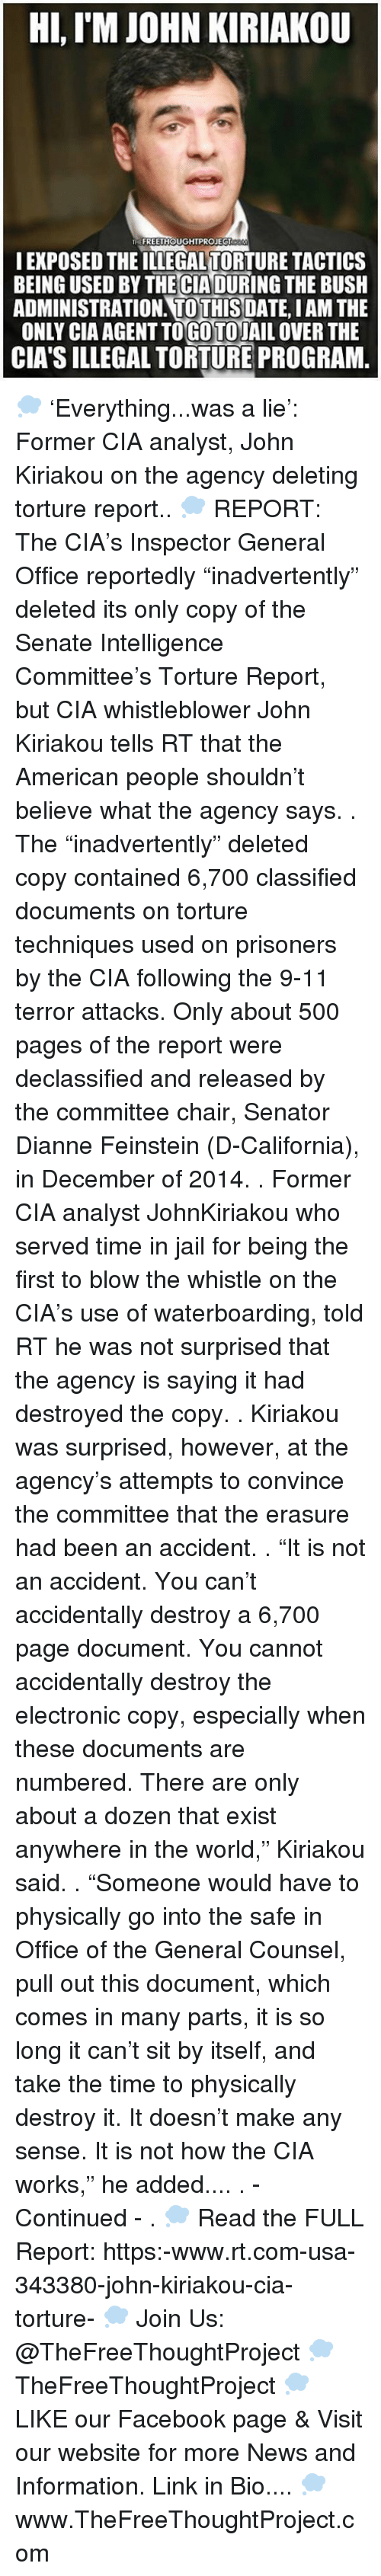 "torturous: Hi, IM JOHN KIRIAKOU  FREETHOUGHTPROJECT  I EXPOSED THEILLEGALTORTURE TACTICS  BEING USED BYTHECIADURING THE BUSH  ADMINISTRATION TO THIS  DATE IAM THE  ONLY CIAAGENTTOGOTOJAIL OVER THE  CIA's ILLEGAL TORTURE PROGRAM 💭 'Everything...was a lie': Former CIA analyst, John Kiriakou on the agency deleting torture report.. 💭 REPORT: The CIA's Inspector General Office reportedly ""inadvertently"" deleted its only copy of the Senate Intelligence Committee's Torture Report, but CIA whistleblower John Kiriakou tells RT that the American people shouldn't believe what the agency says. . The ""inadvertently"" deleted copy contained 6,700 classified documents on torture techniques used on prisoners by the CIA following the 9-11 terror attacks. Only about 500 pages of the report were declassified and released by the committee chair, Senator Dianne Feinstein (D-California), in December of 2014. . Former CIA analyst JohnKiriakou who served time in jail for being the first to blow the whistle on the CIA's use of waterboarding, told RT he was not surprised that the agency is saying it had destroyed the copy. . Kiriakou was surprised, however, at the agency's attempts to convince the committee that the erasure had been an accident. . ""It is not an accident. You can't accidentally destroy a 6,700 page document. You cannot accidentally destroy the electronic copy, especially when these documents are numbered. There are only about a dozen that exist anywhere in the world,"" Kiriakou said. . ""Someone would have to physically go into the safe in Office of the General Counsel, pull out this document, which comes in many parts, it is so long it can't sit by itself, and take the time to physically destroy it. It doesn't make any sense. It is not how the CIA works,"" he added.... . - Continued - . 💭 Read the FULL Report: https:-www.rt.com-usa-343380-john-kiriakou-cia-torture- 💭 Join Us: @TheFreeThoughtProject 💭 TheFreeThoughtProject 💭 LIKE our Facebook page & Visit our website for more News and Information. Link in Bio.... 💭 www.TheFreeThoughtProject.com"